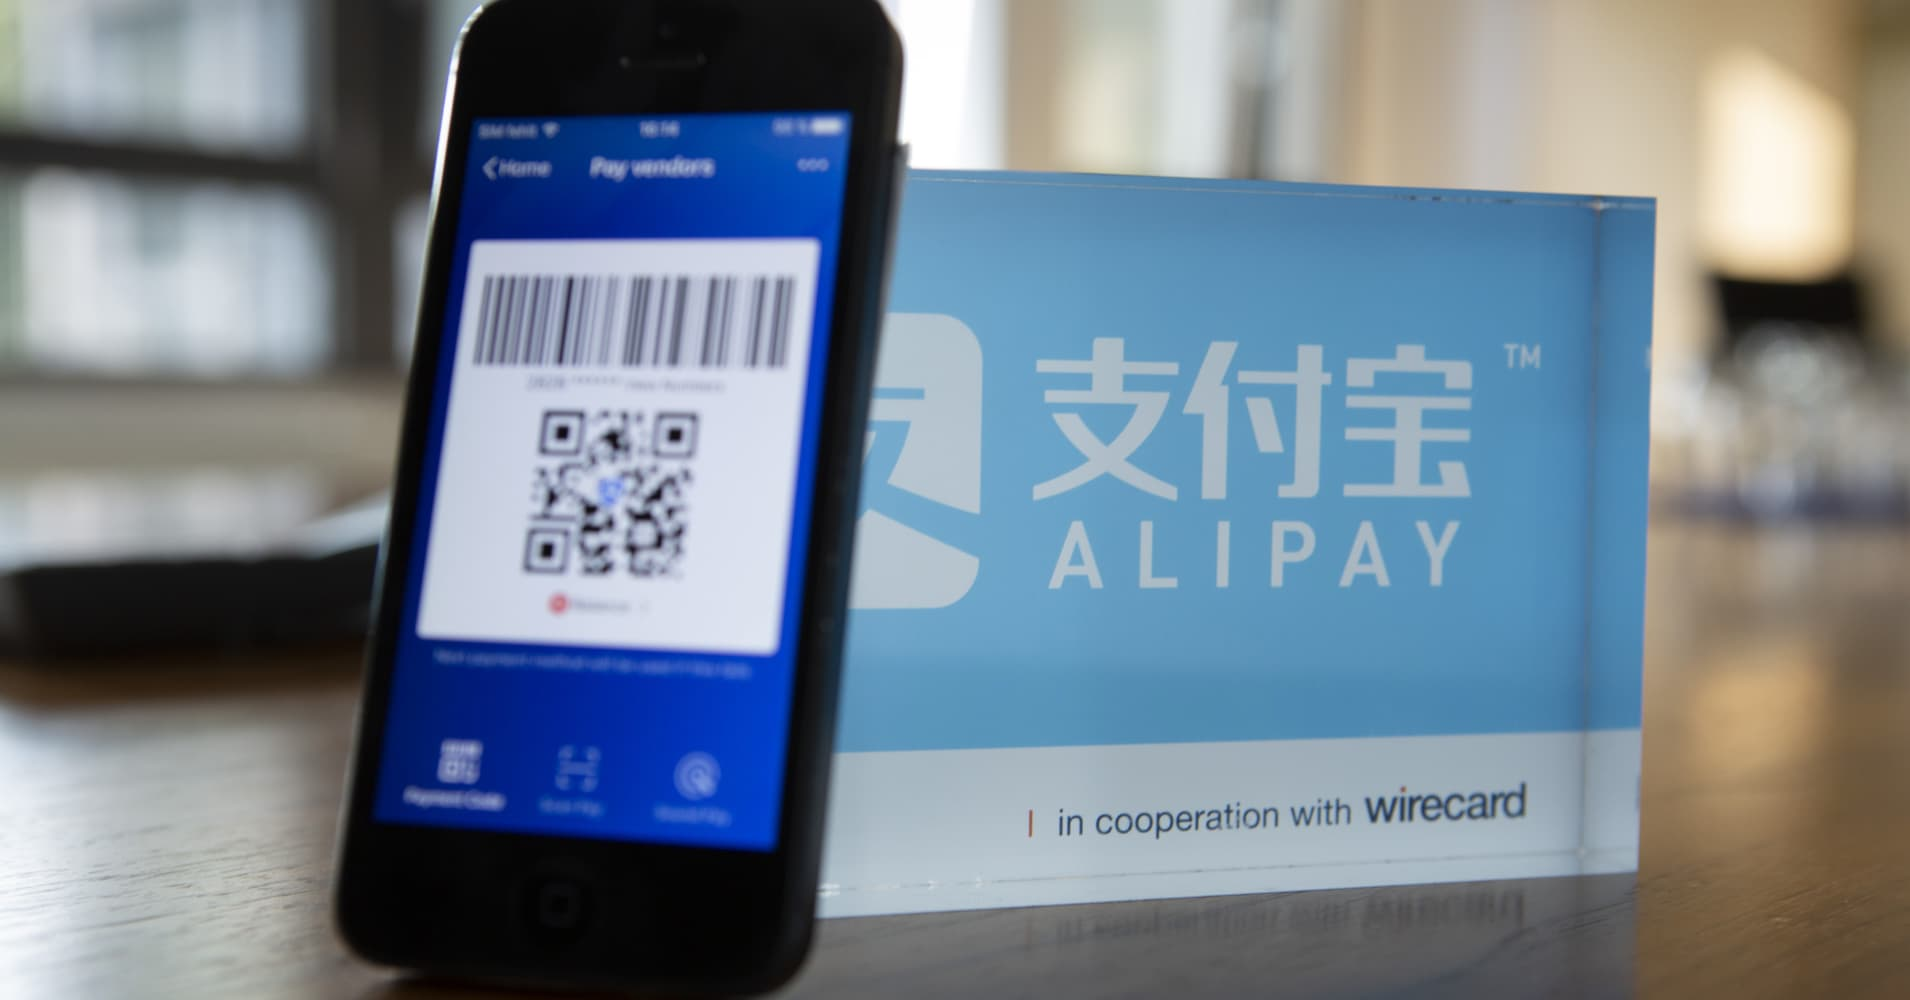 Alipay's parent company says tech services — not payments — will be its main business in the future